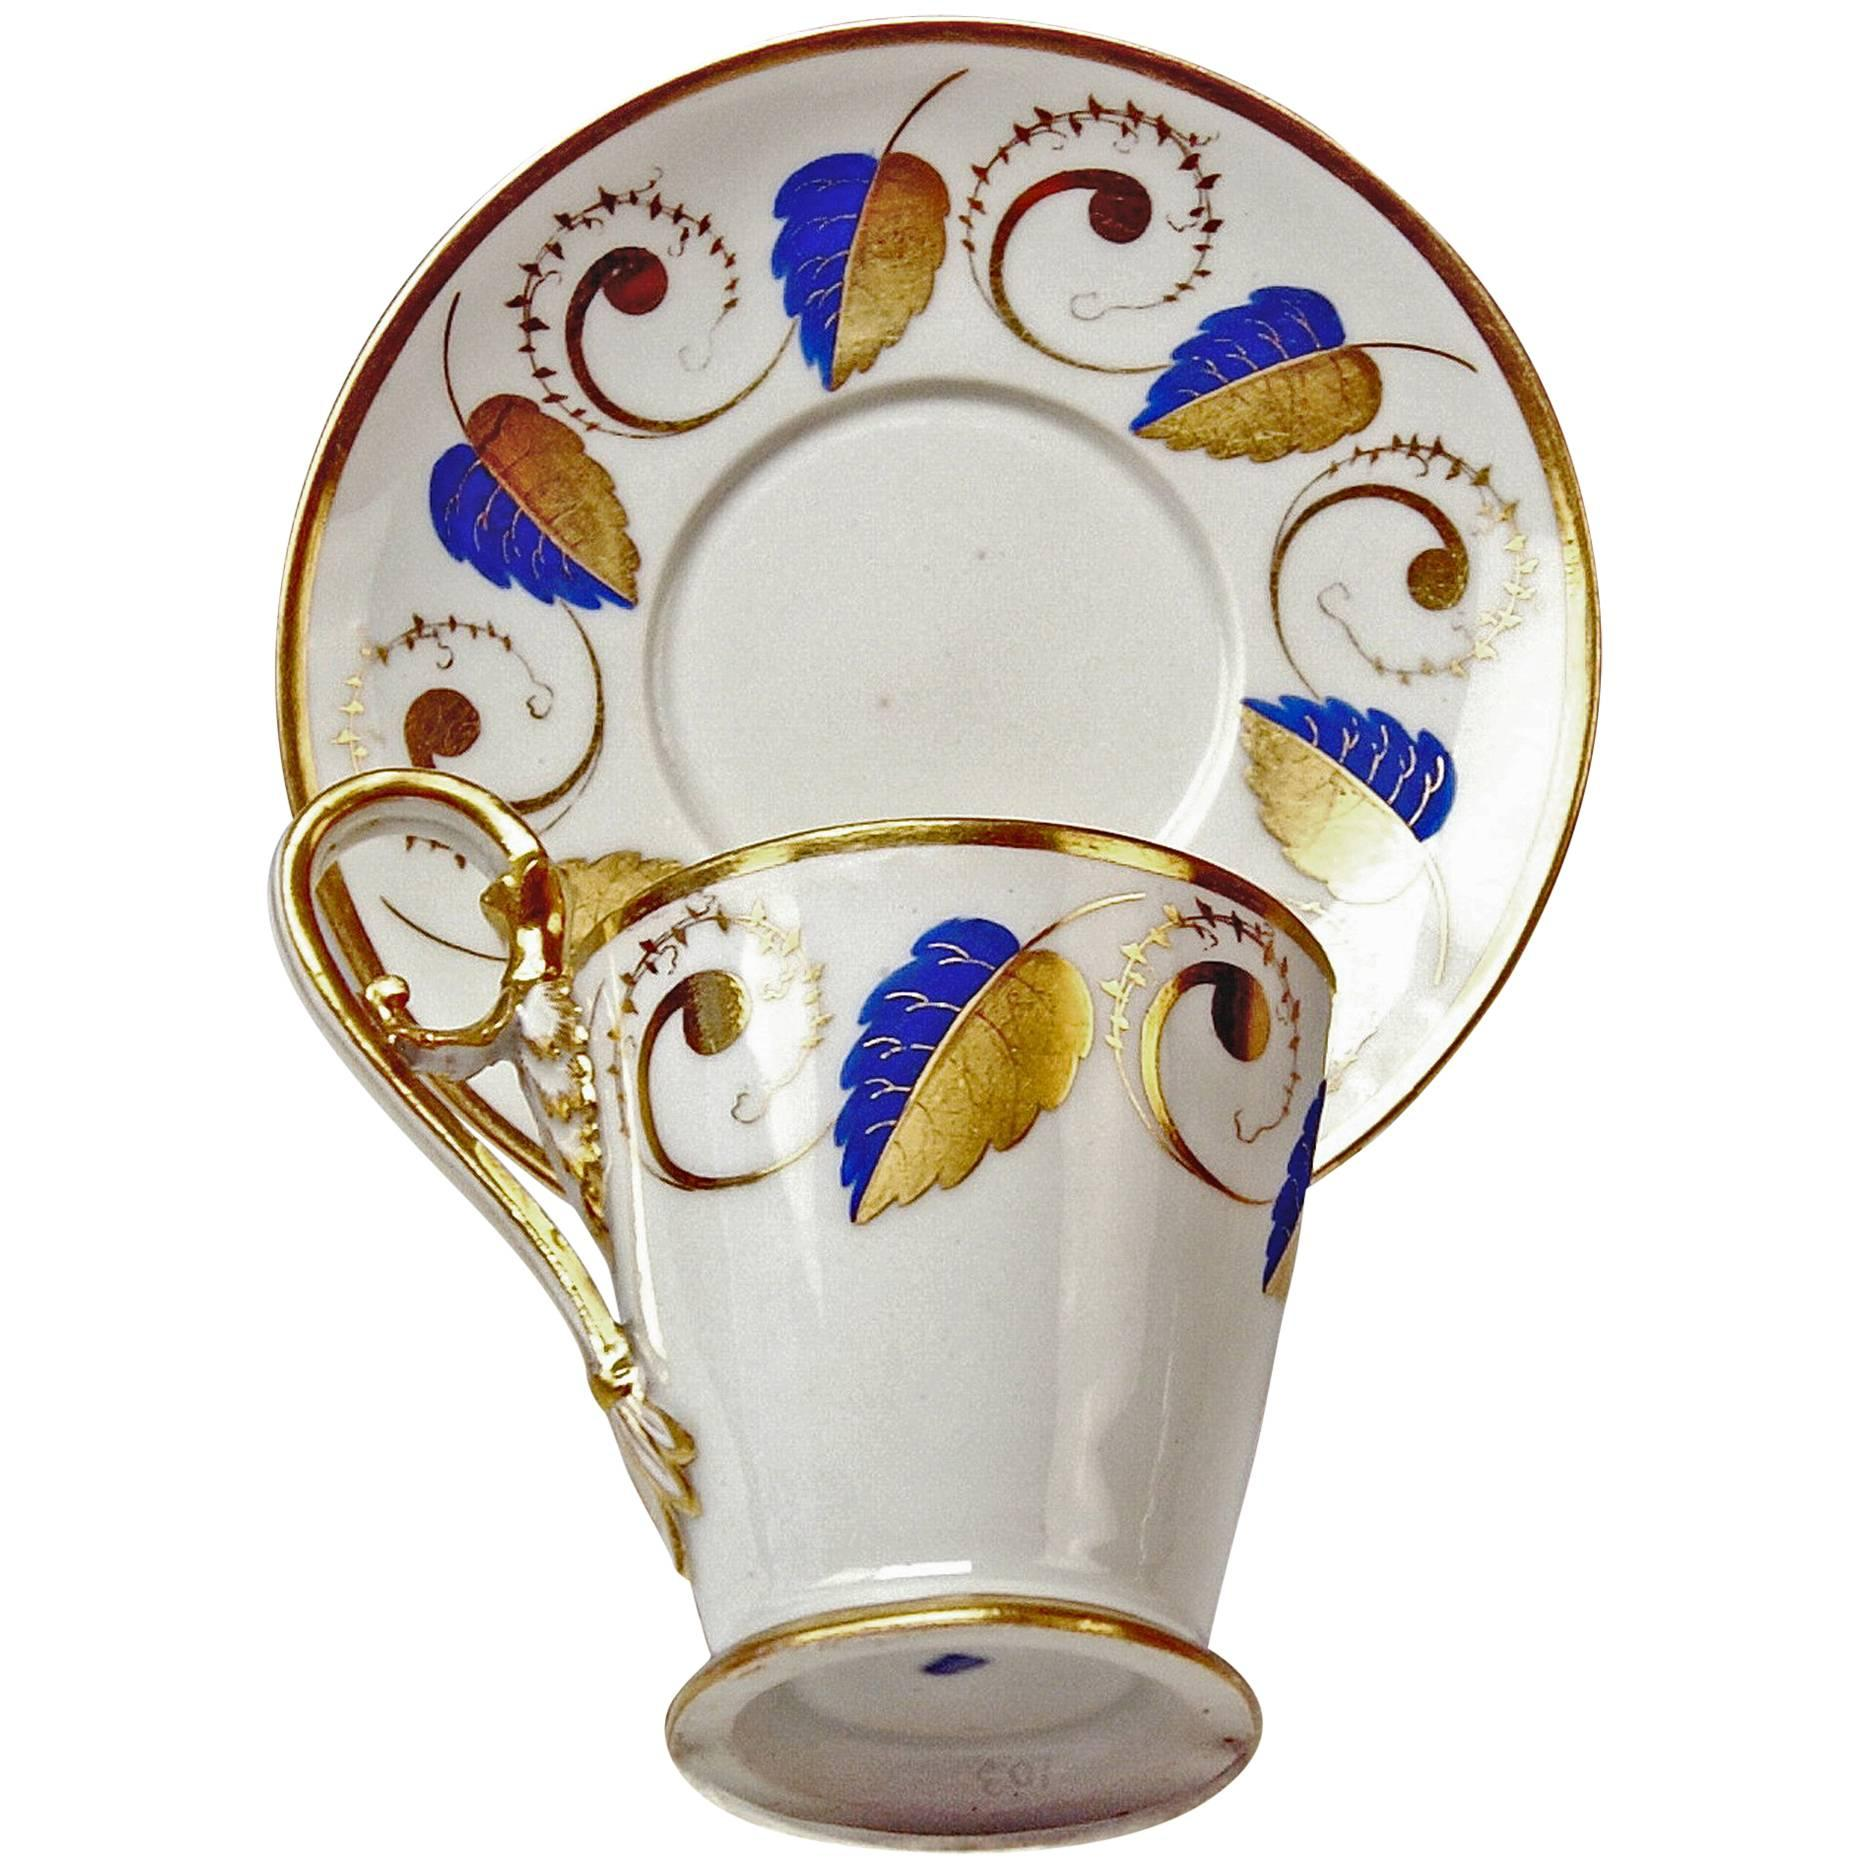 Vienna Imperial Porcelain Cup Saucer Golden Blue Ornaments with Leaves 1812